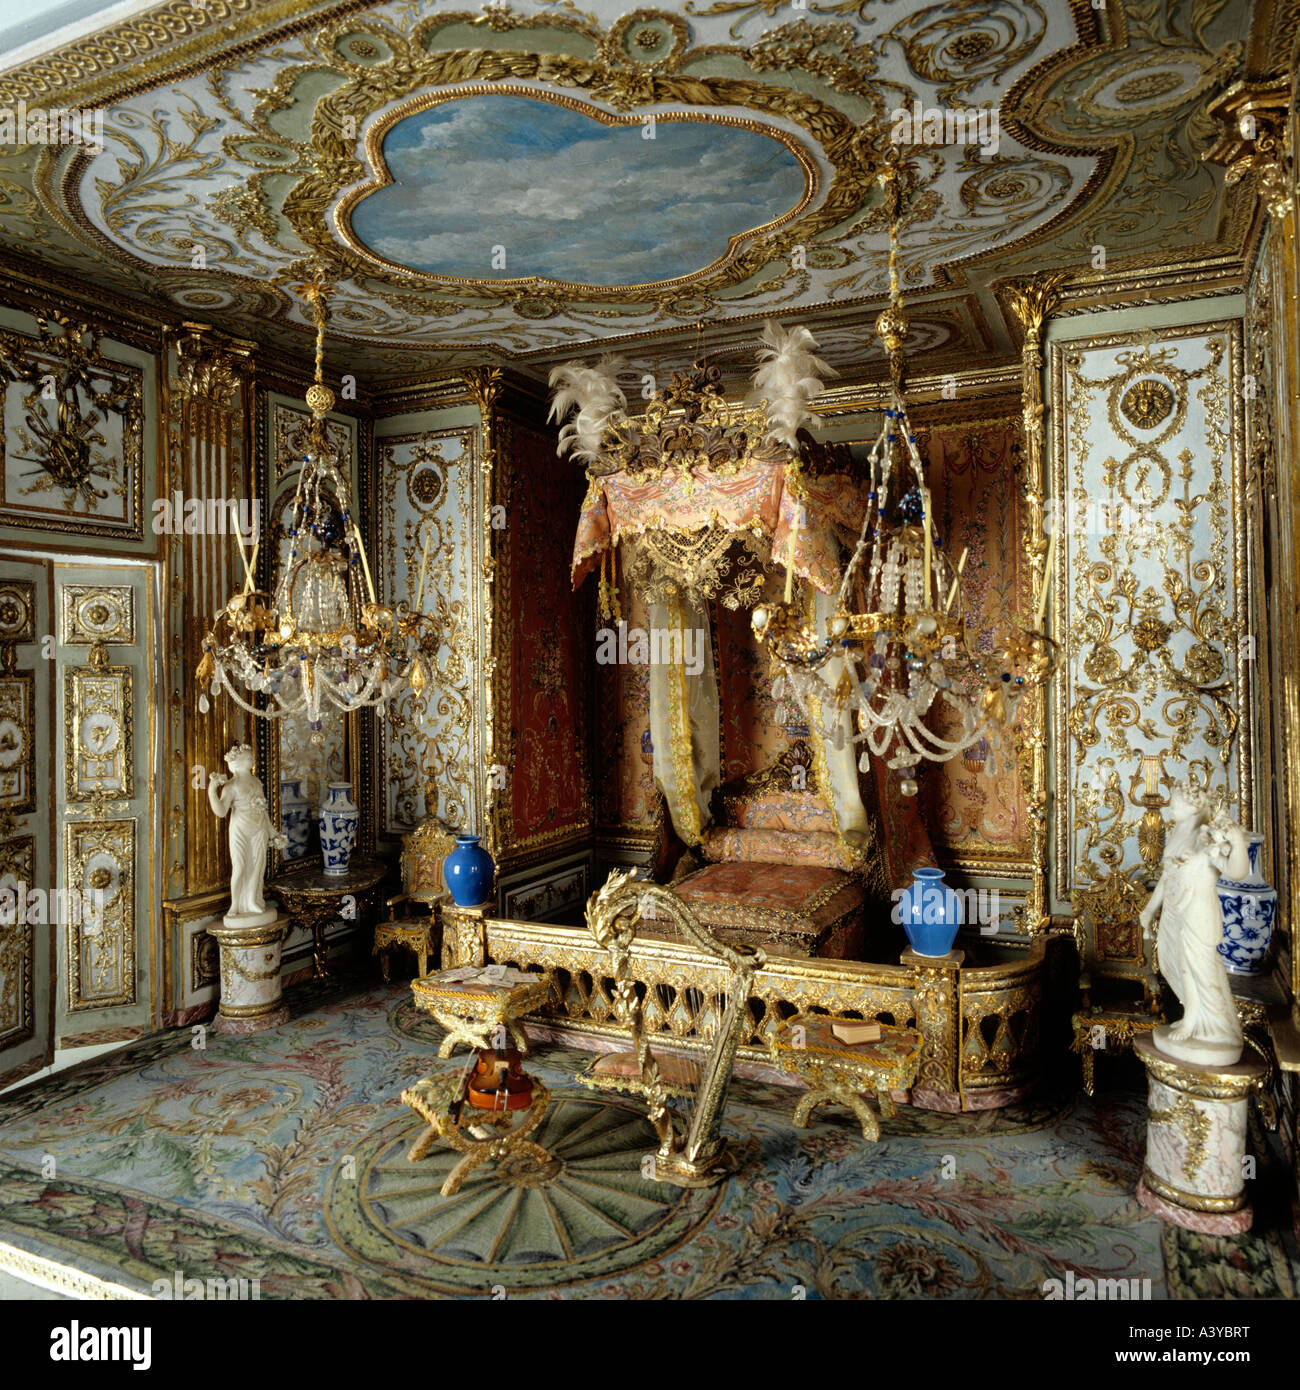 Four Poster Bed With Coronet In A Thierry Bosquet Dolls House Interiors Inspired By Rooms At Versailles